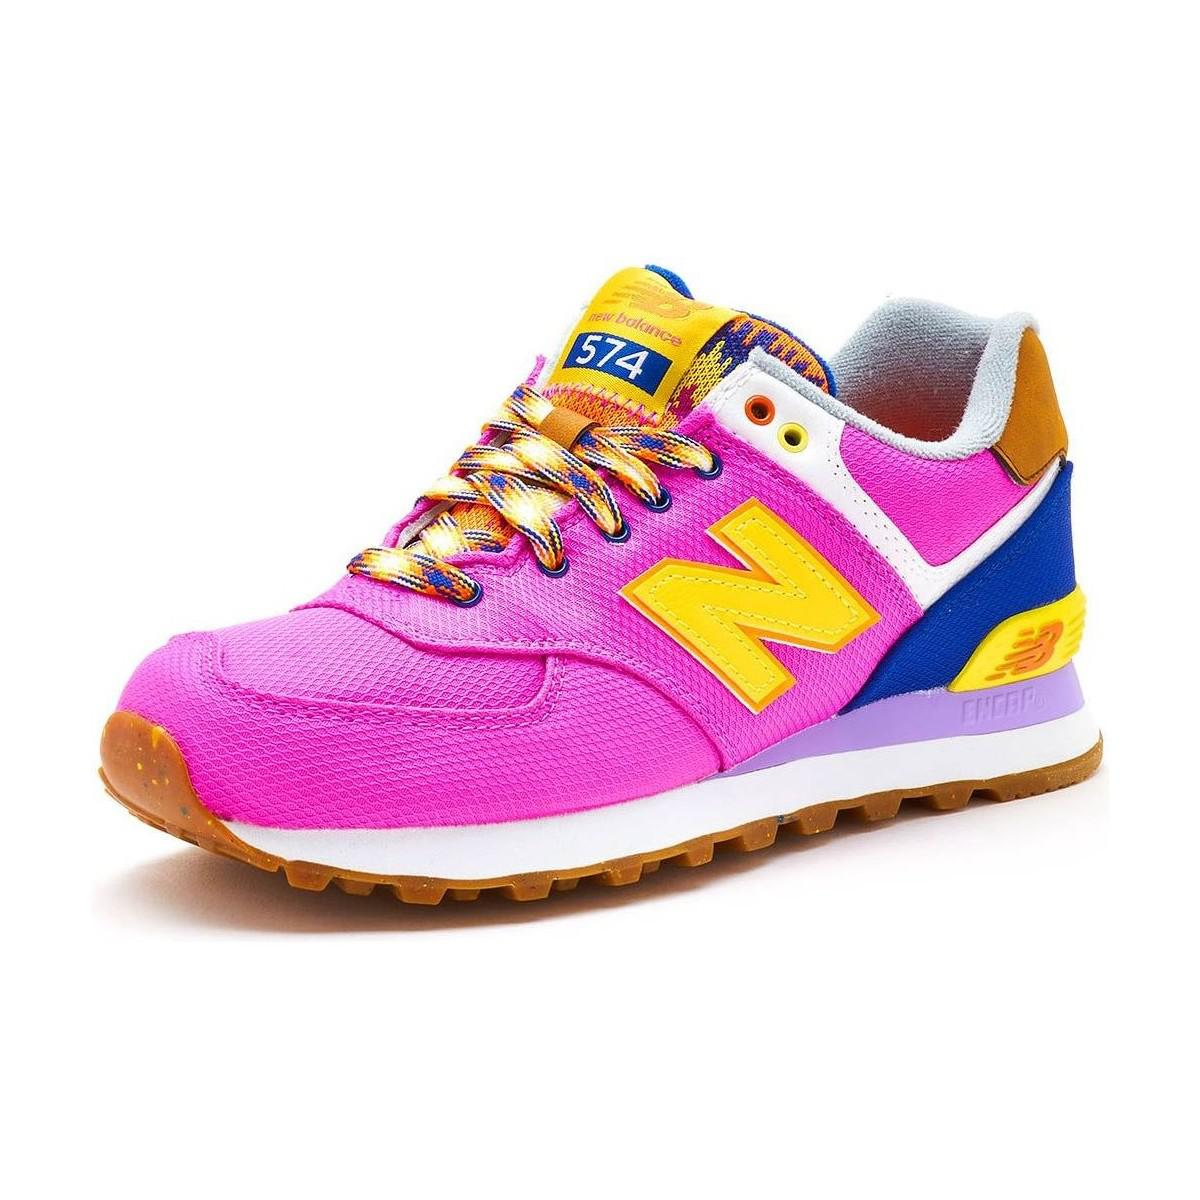 new balance classic 574 pink womens trainers